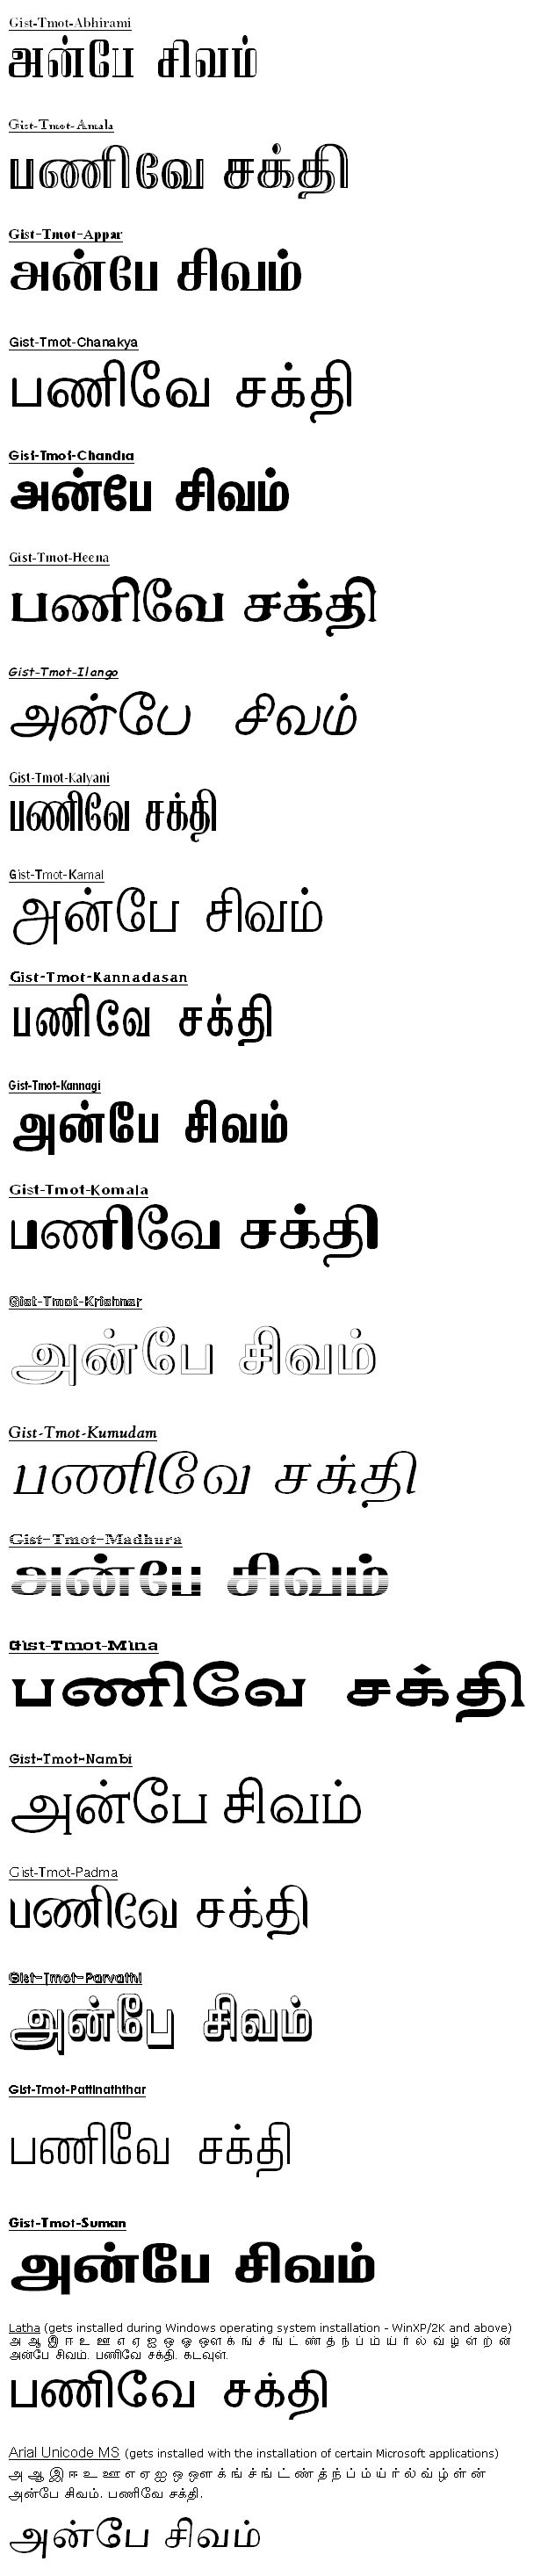 Design Tamil Fonts Free Download:  Baby names in tamil rh:pinterest.com,Design